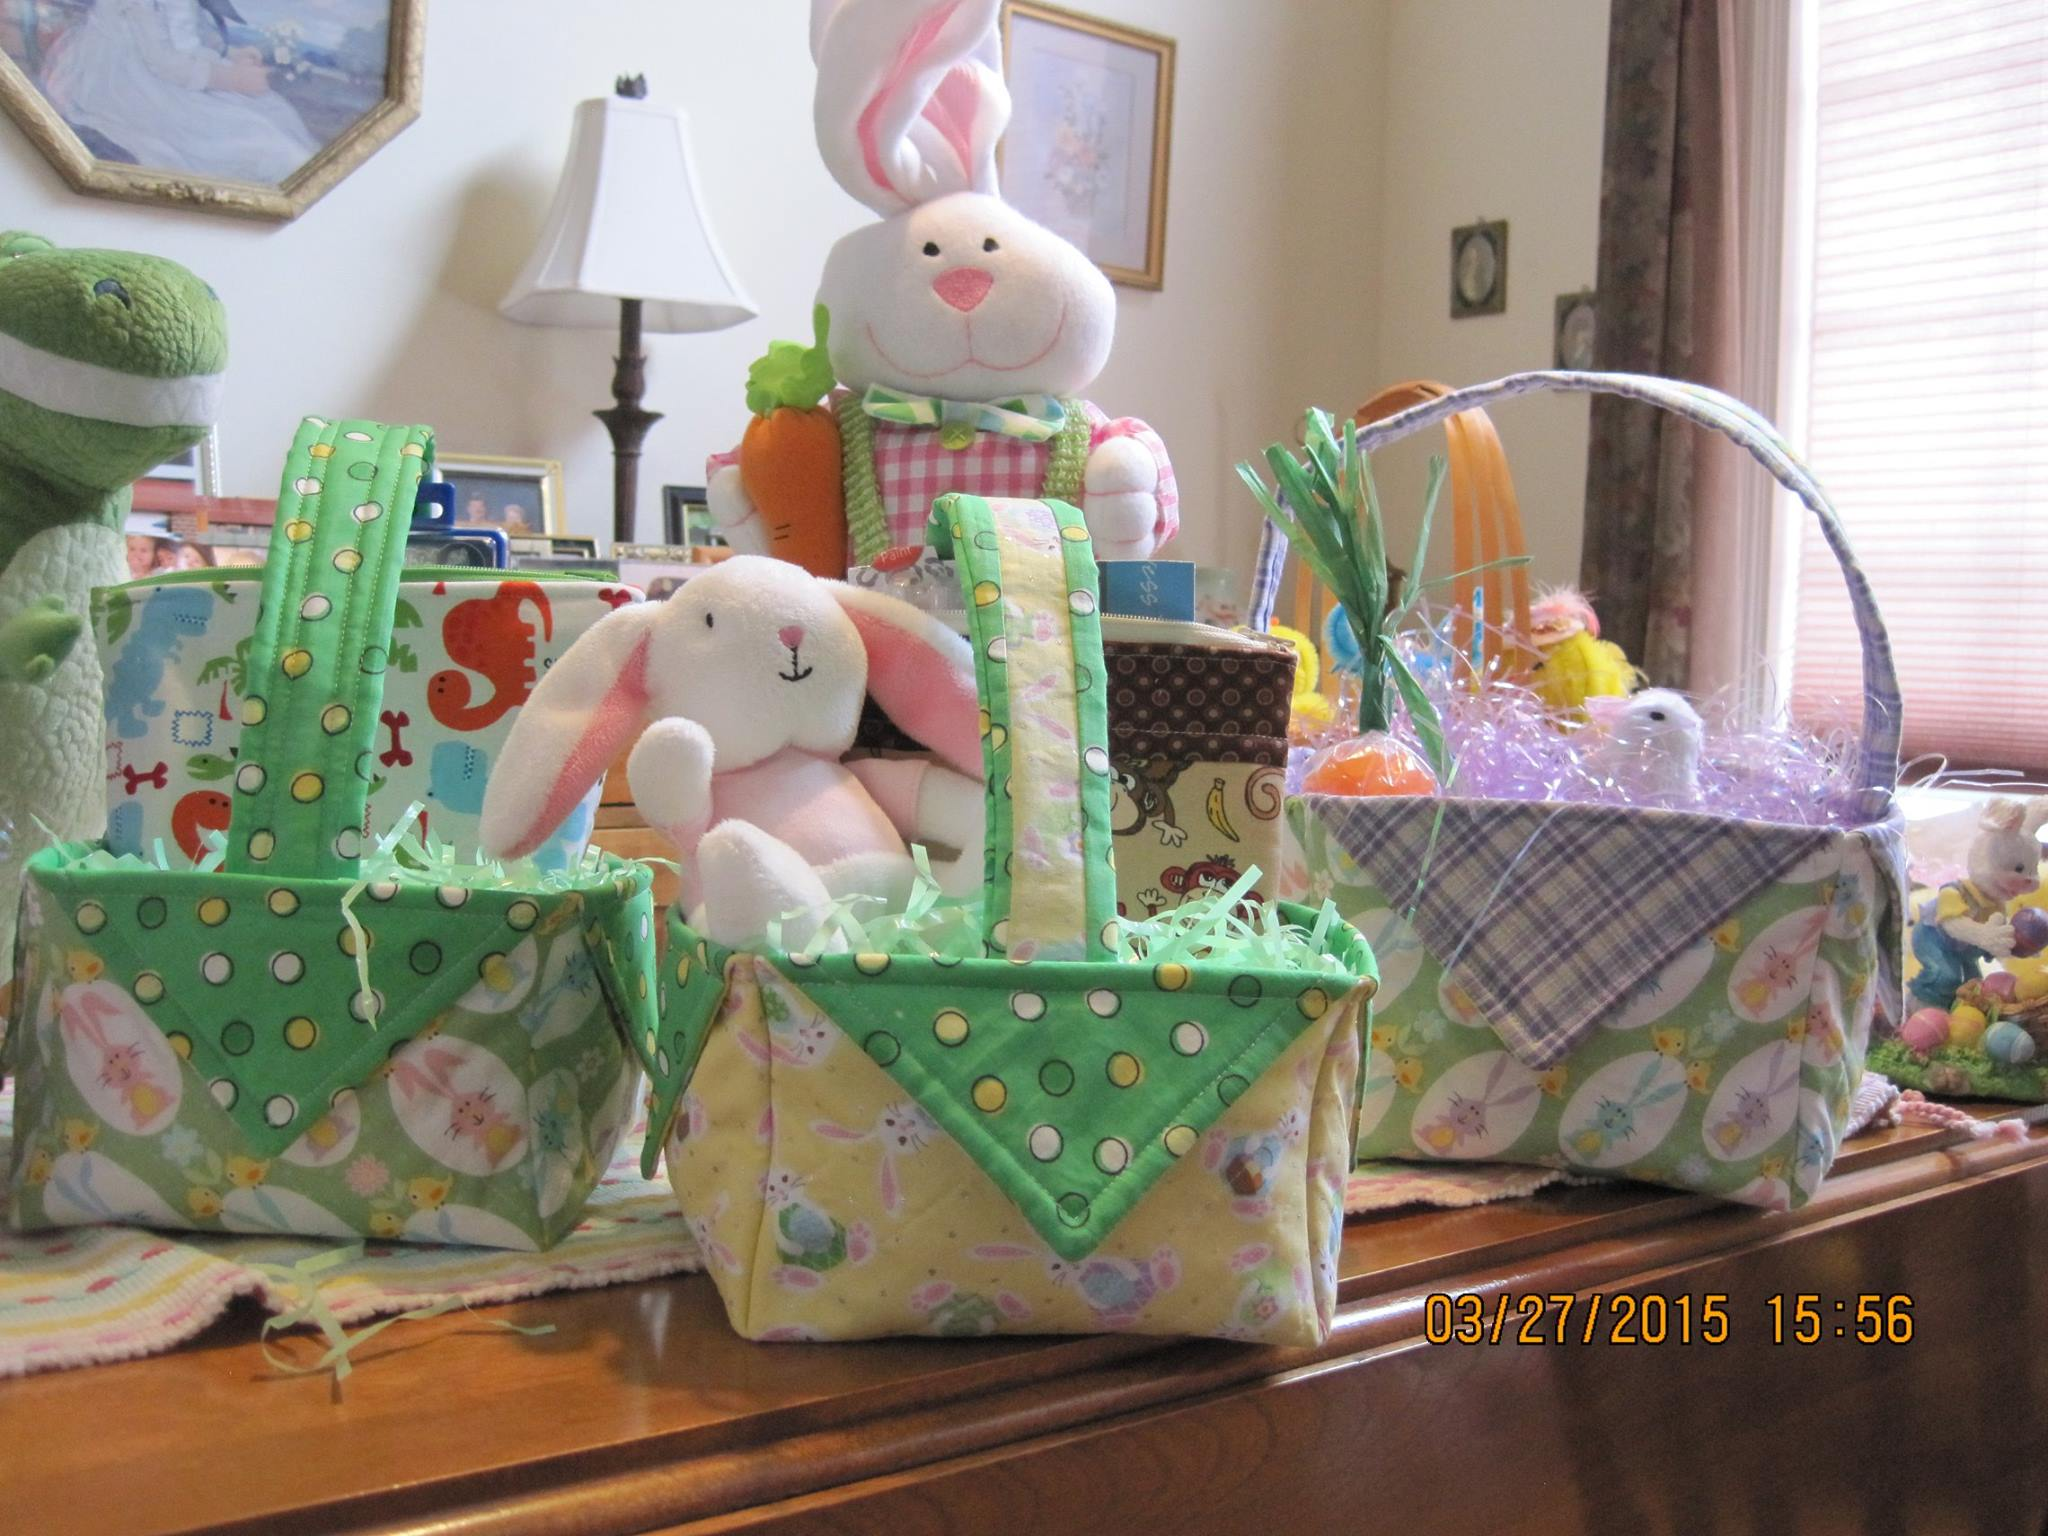 Diy fabric easter basket video tutorial crafty gemini 110700959053007661679862442858612537330643o negle Images